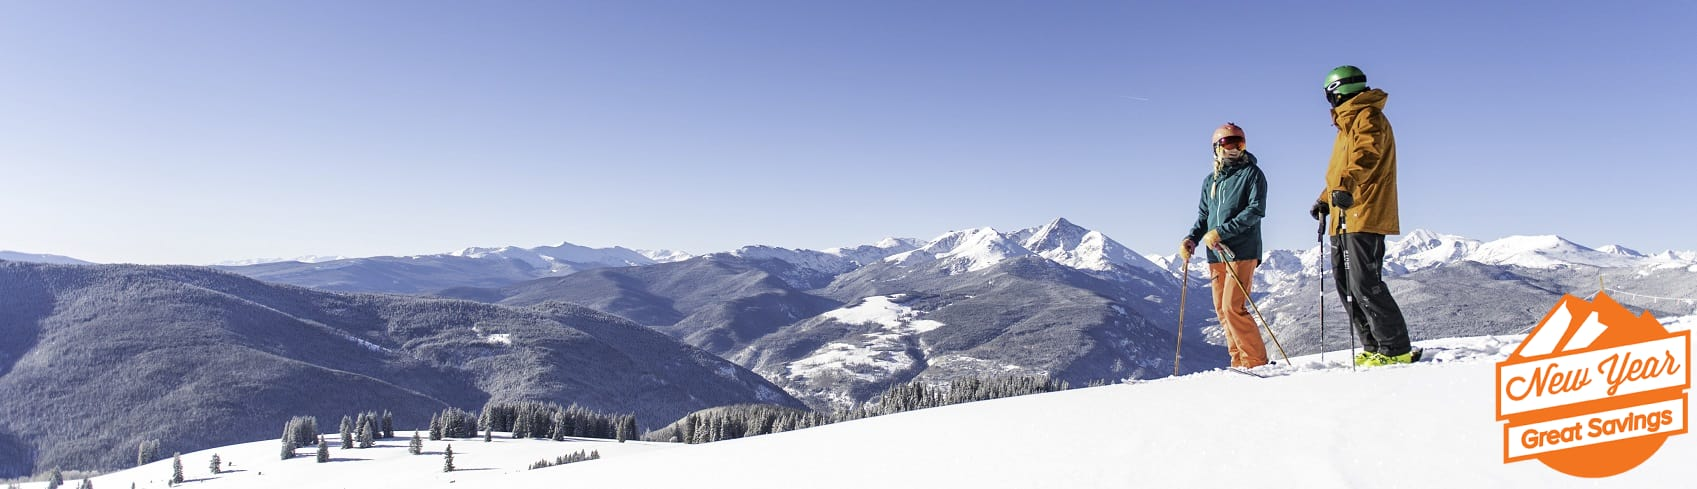 vail all access lodging deal | vail ski resort